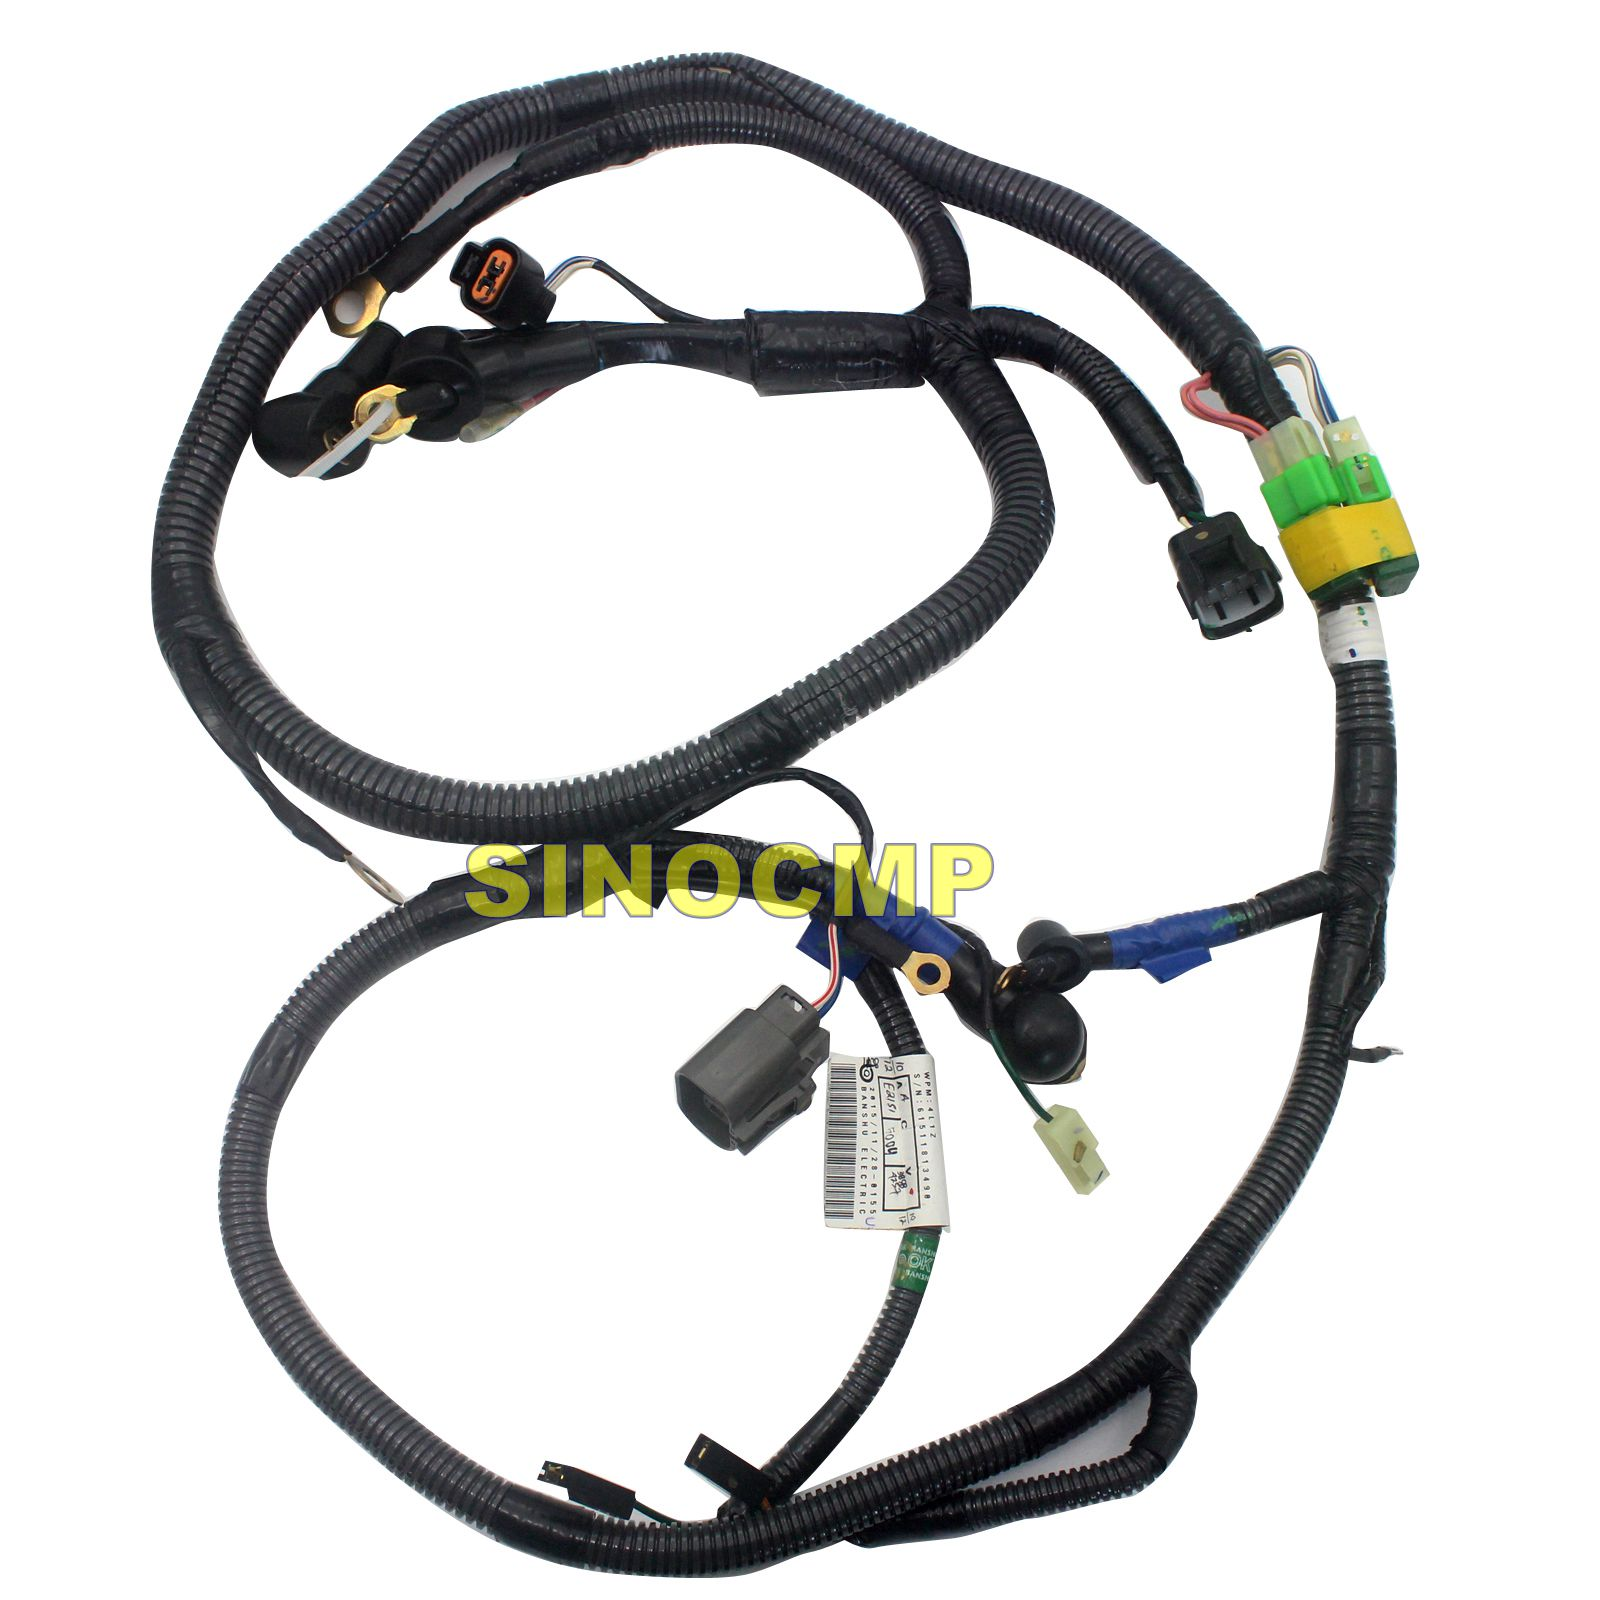 Engine Wiring Harness Yn14e01050p1 For Kobelco Sk220 6e Sk220lc Automotive Excavator